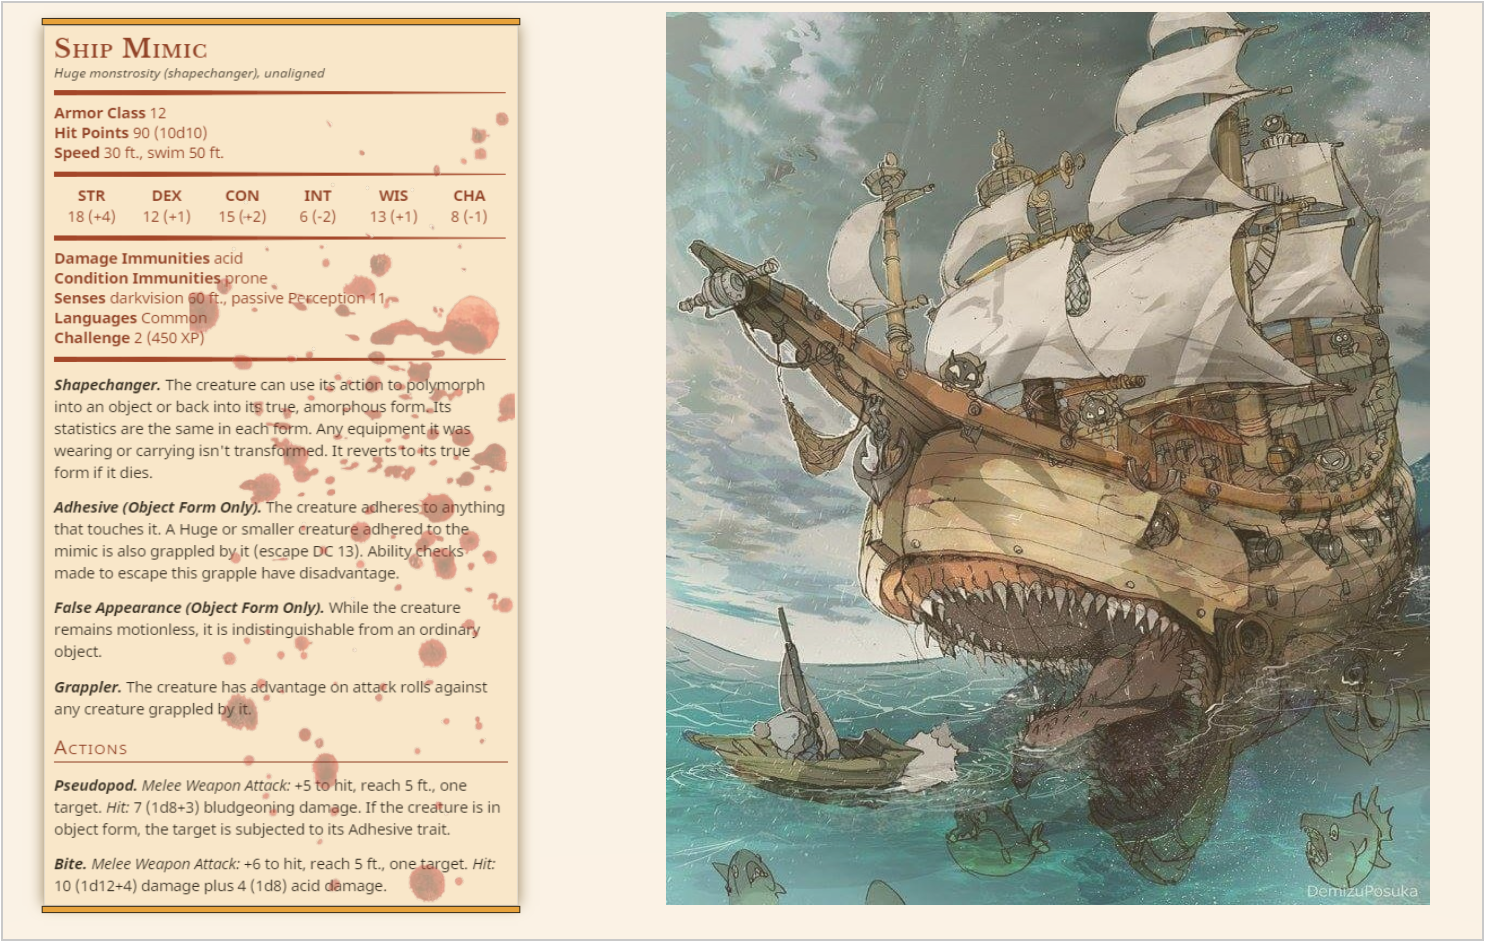 Pin by Robert Hobbs on D&d in 2019 | Dnd monsters, Dnd stats